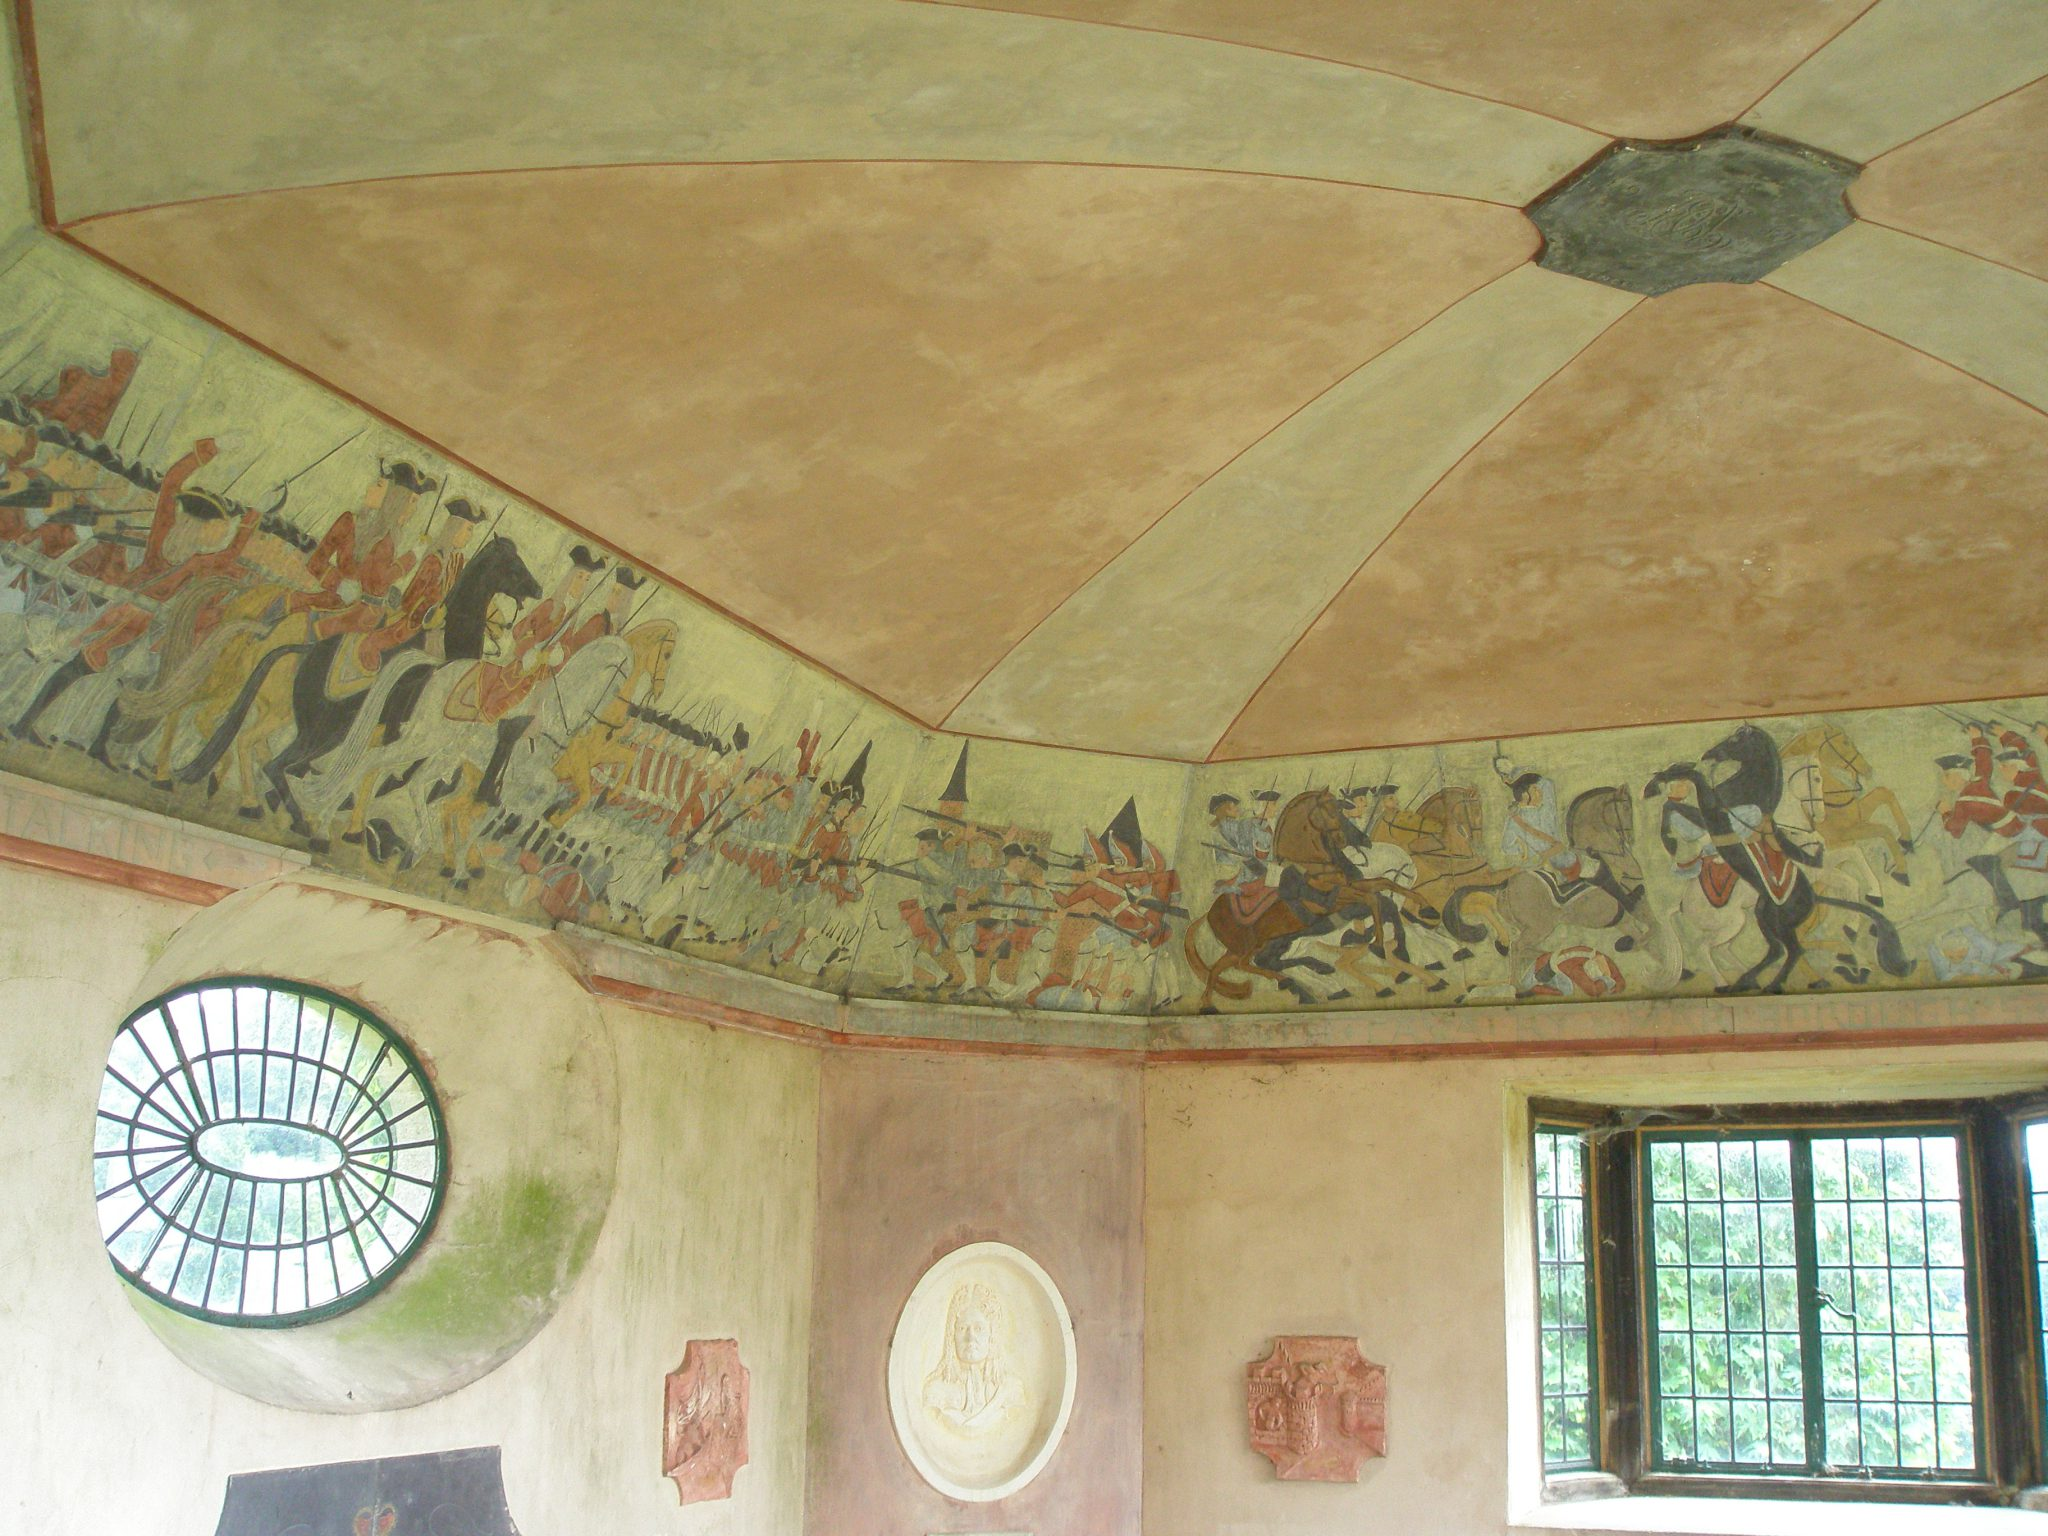 The frieze around the ceiling evokes the Marlborough wars. One panel shows the defense of the village of Blenheim; the climactic moment of the Duke's most famous victory. The Duke's grand palace in Woodstock, Oxforshire, is named after this battle. Winston Churchill was born at Blenheim Palace...but not by plan. As mentioned, his arrival came a bit ahead of schedule.